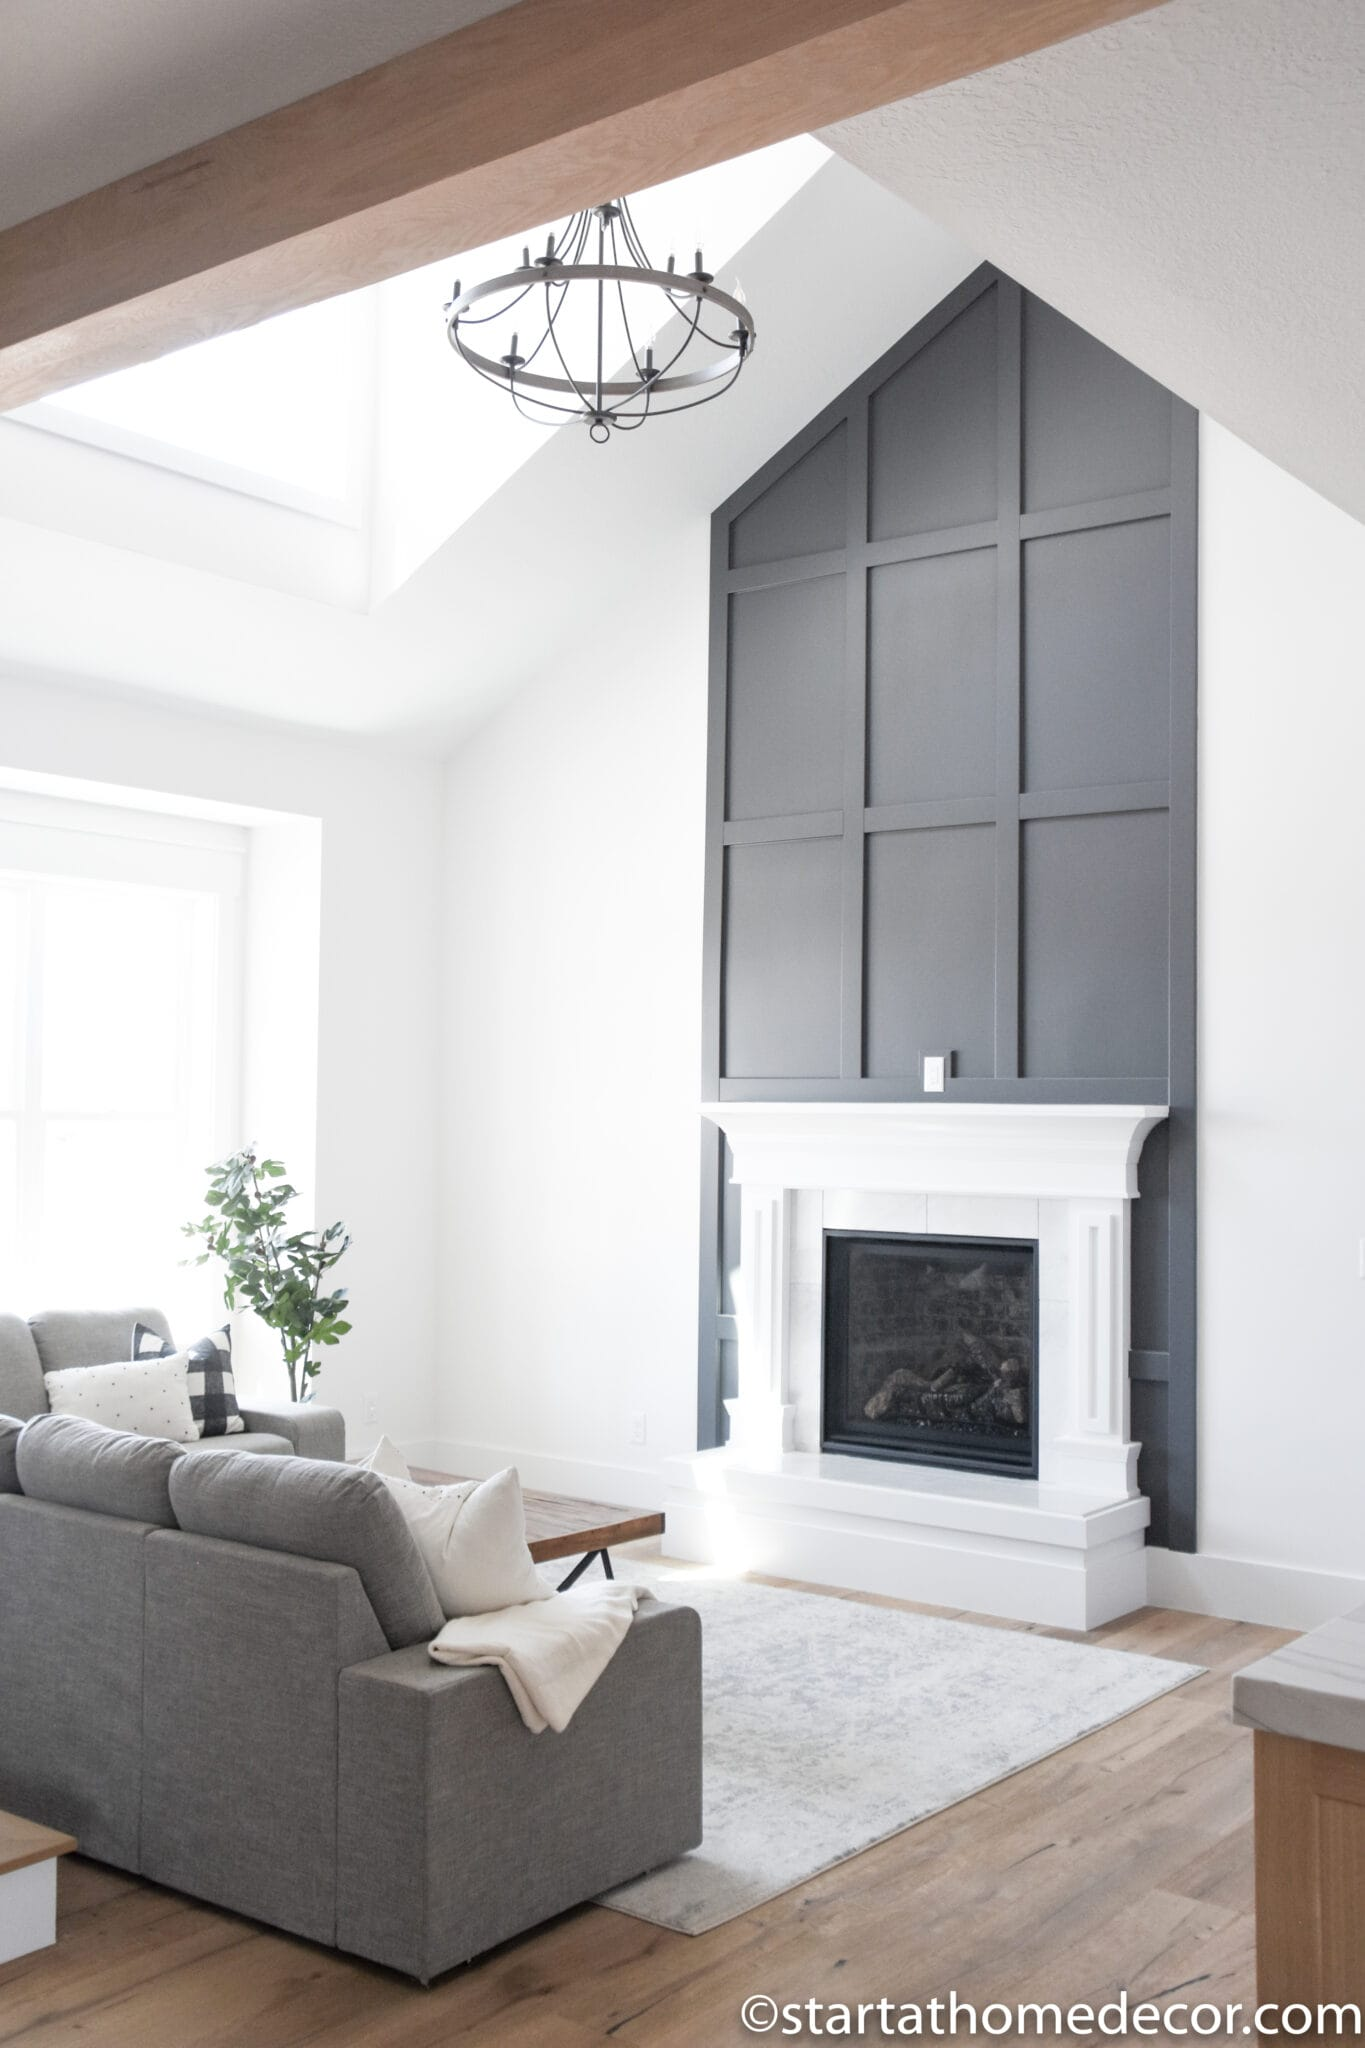 tall geometric millwork behind white fireplace